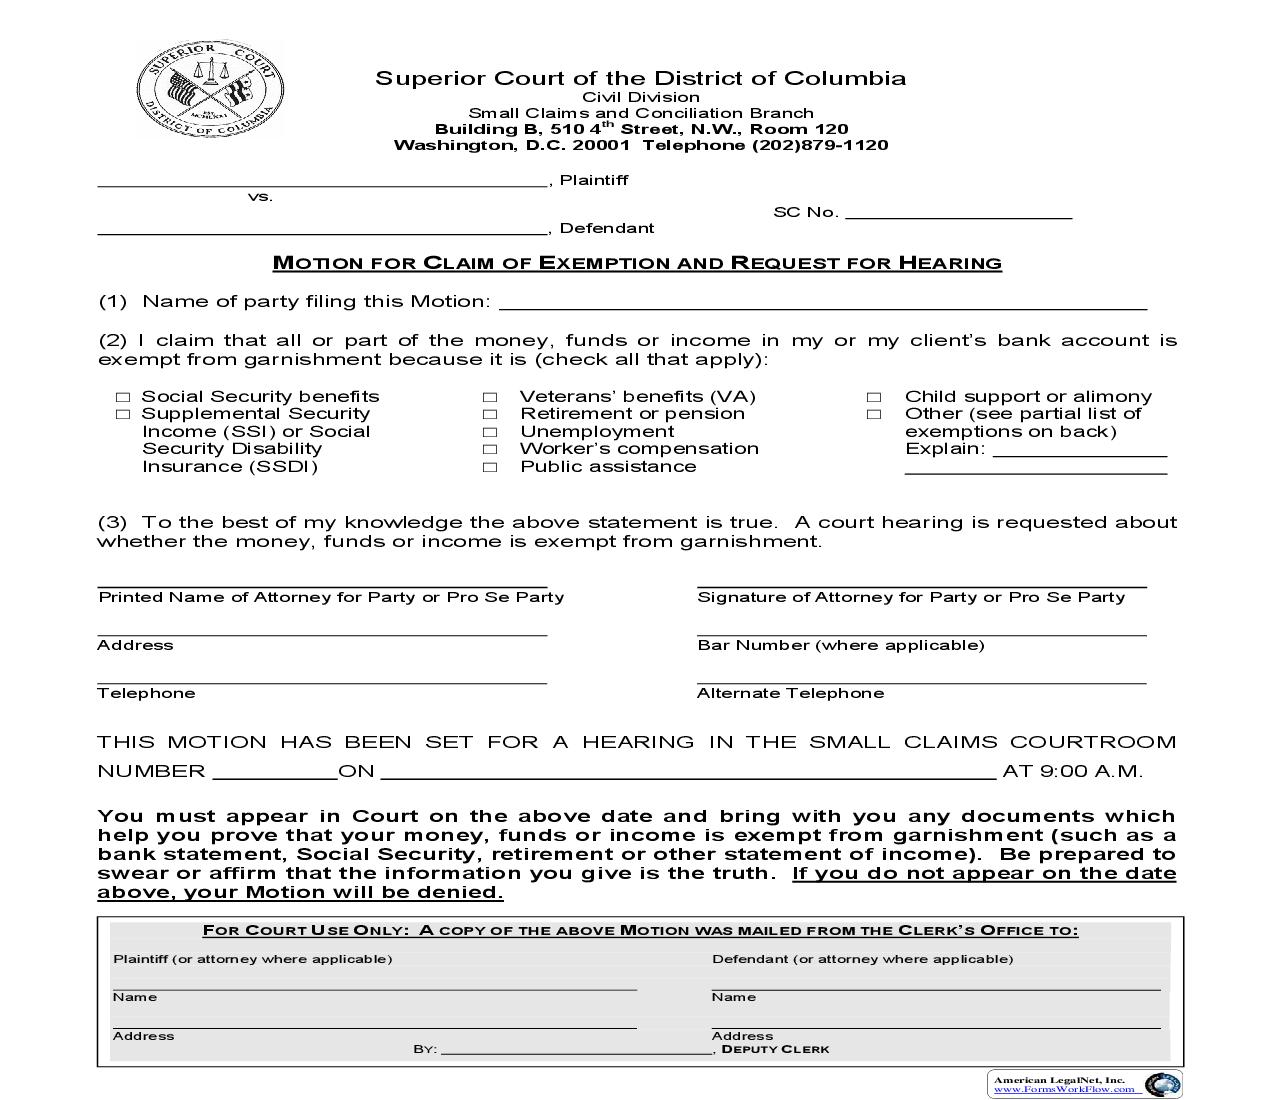 Motion For Claim Of Exemption And Request For Hearing | Pdf Fpdf Doc Docx | District Of Columbia